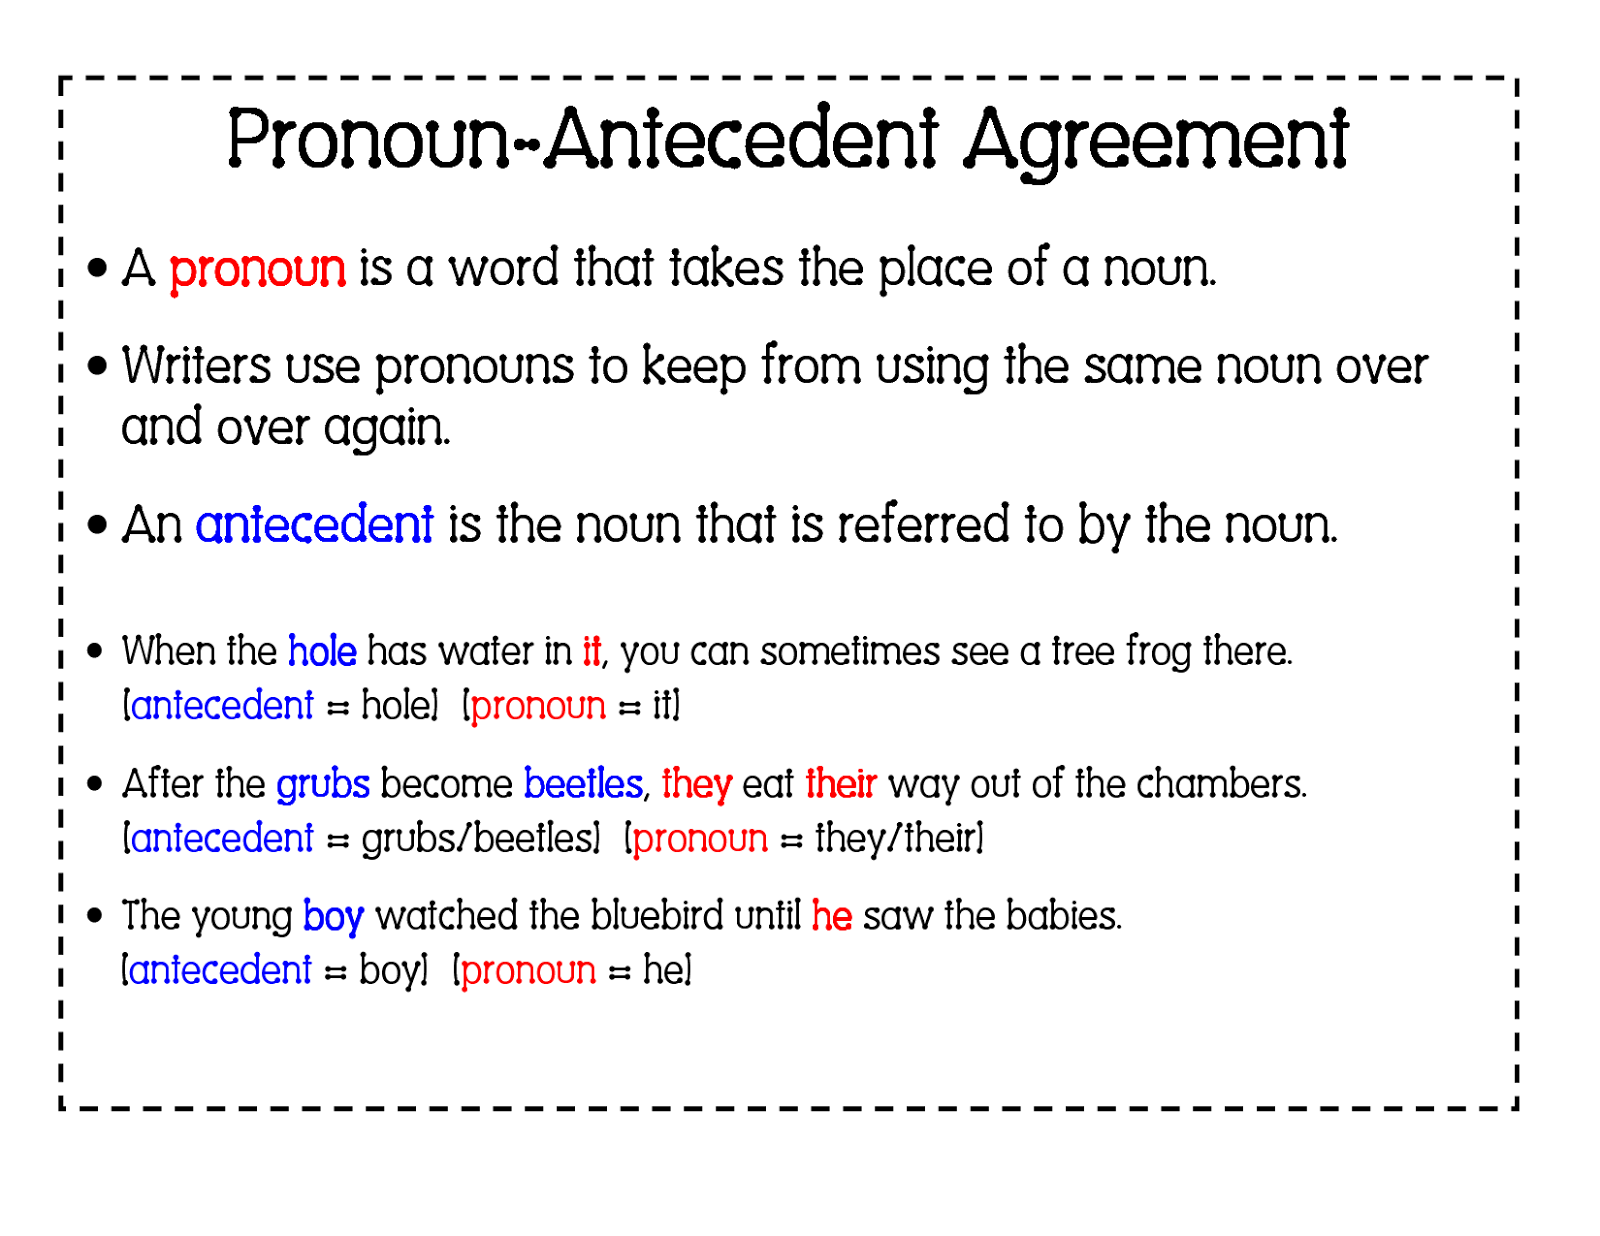 worksheet Pronoun Practice Worksheets 6th grade english with mr t pronoun antecedent agreement part 2 review practice identifying pronouns antecedents socrative